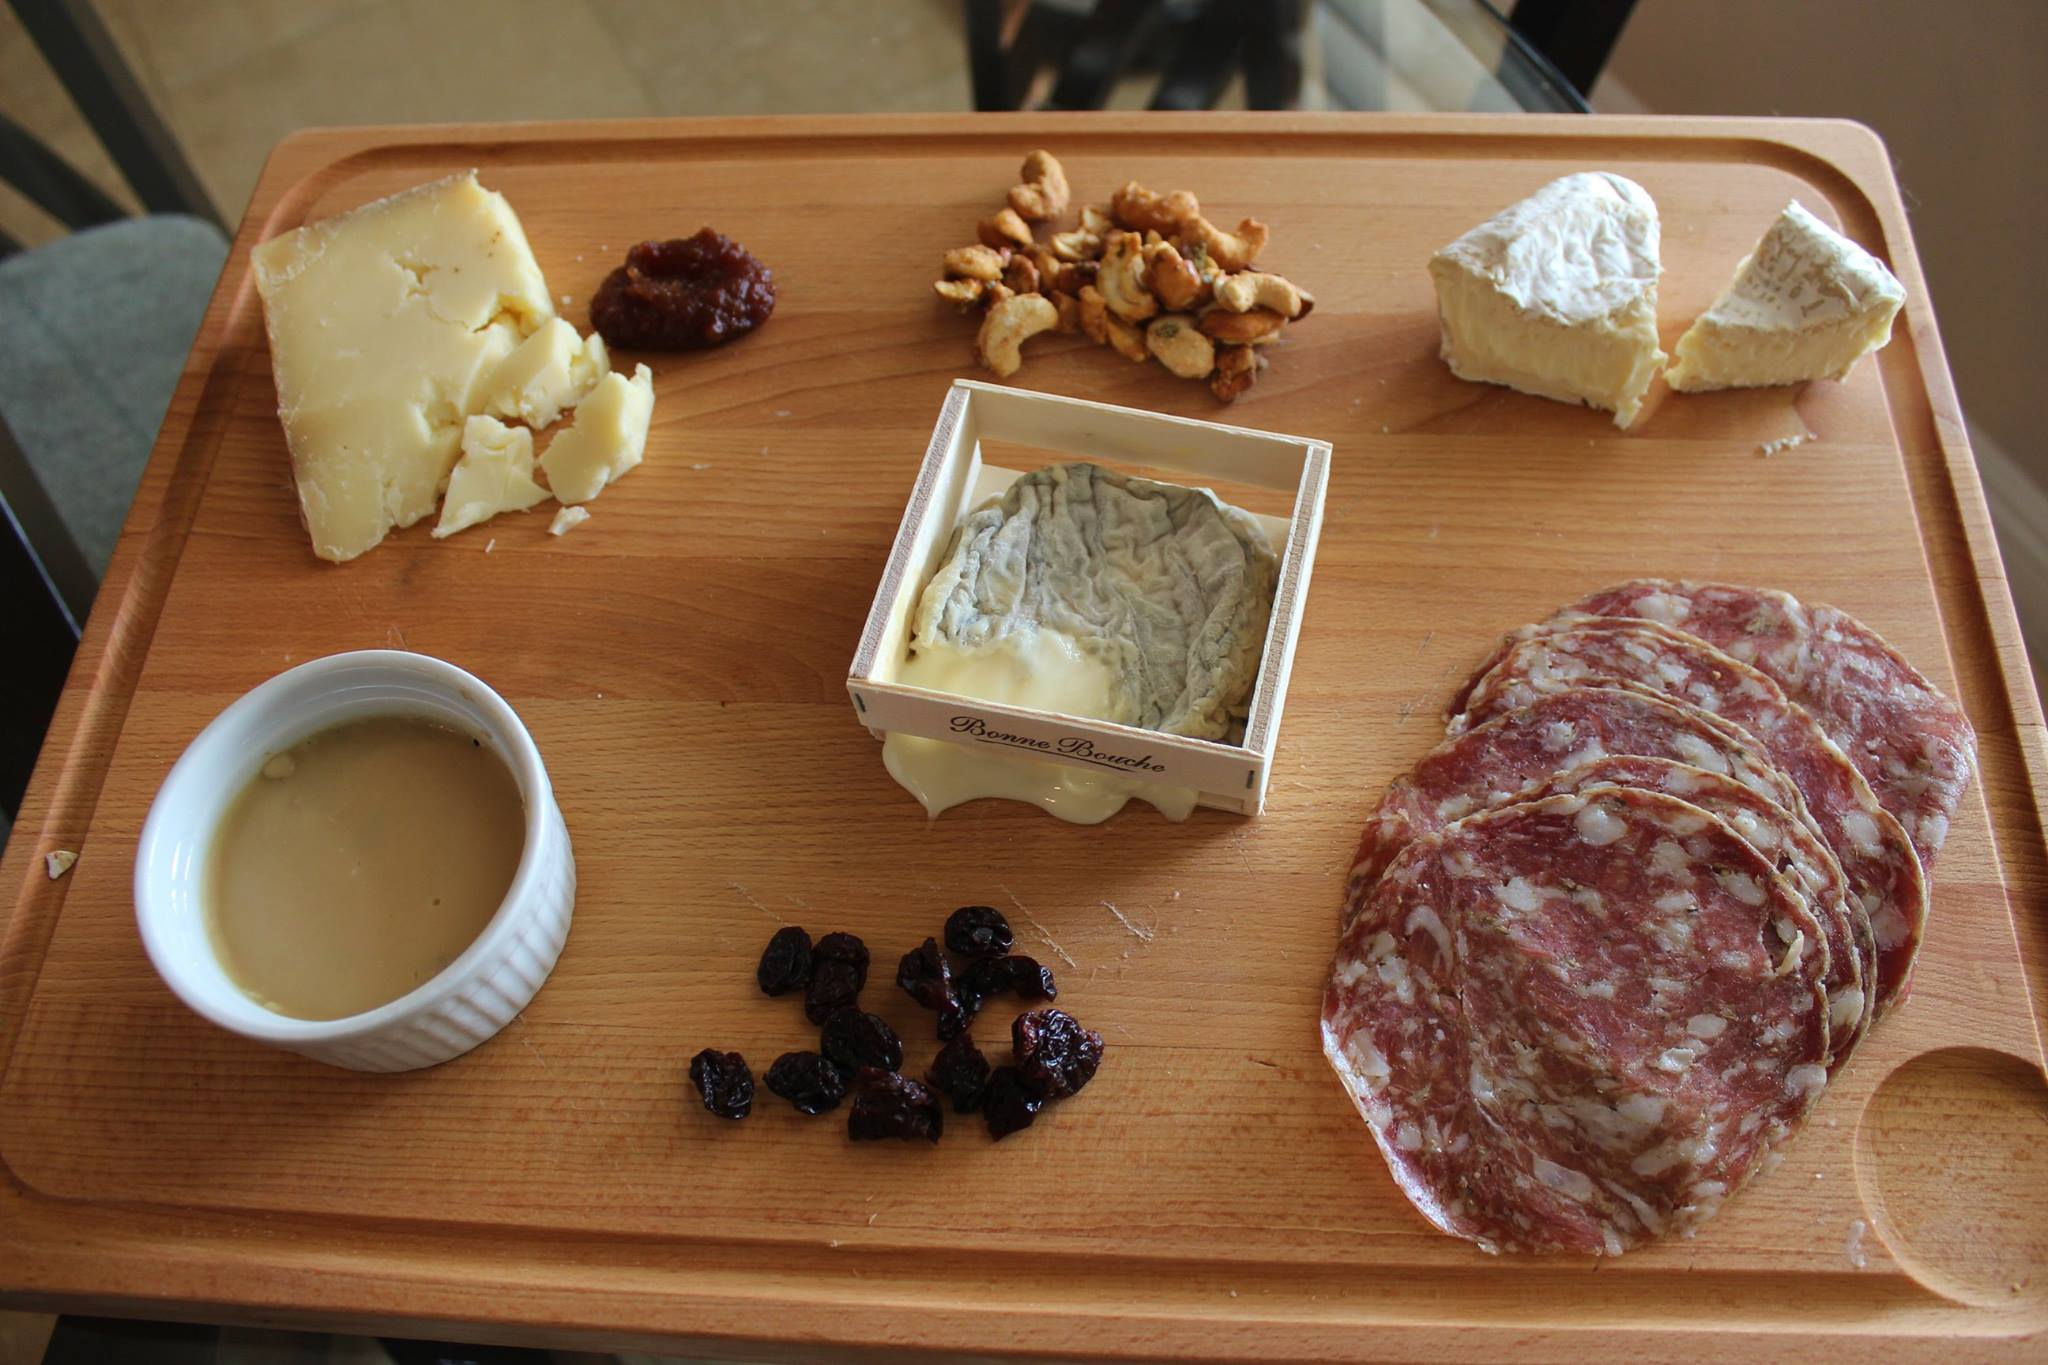 Flory's Truckle with quince compote, nuts, Mt. Tam, finocchiona, dried cherries, homemade pork rillettes and Bonne Bouche